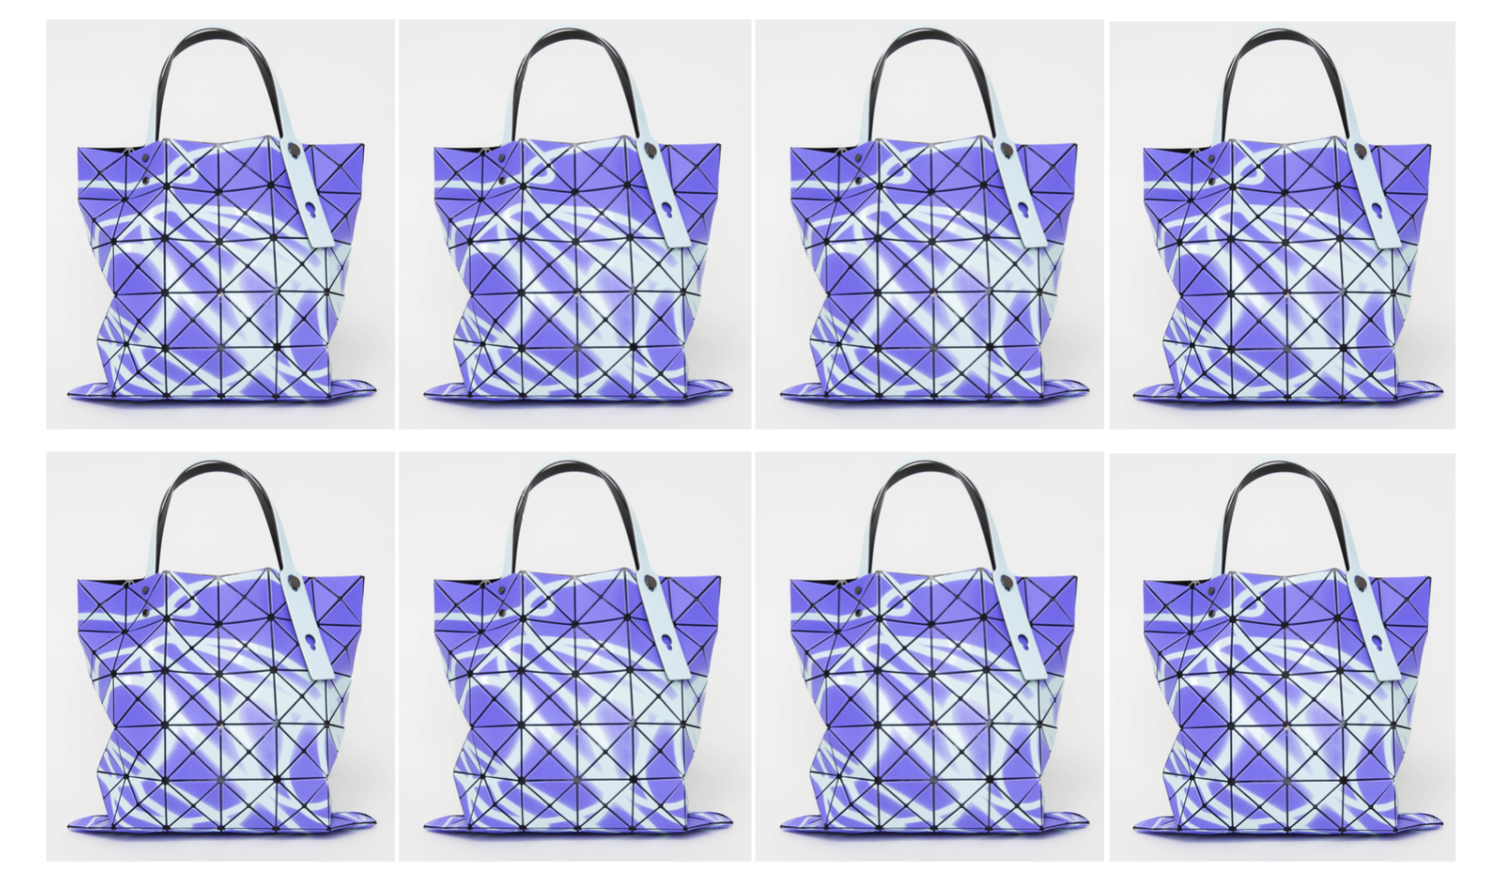 reputable site cf3ee 029c6 Issey Miyake Lands Unfair Competition Win in Japan Over ...